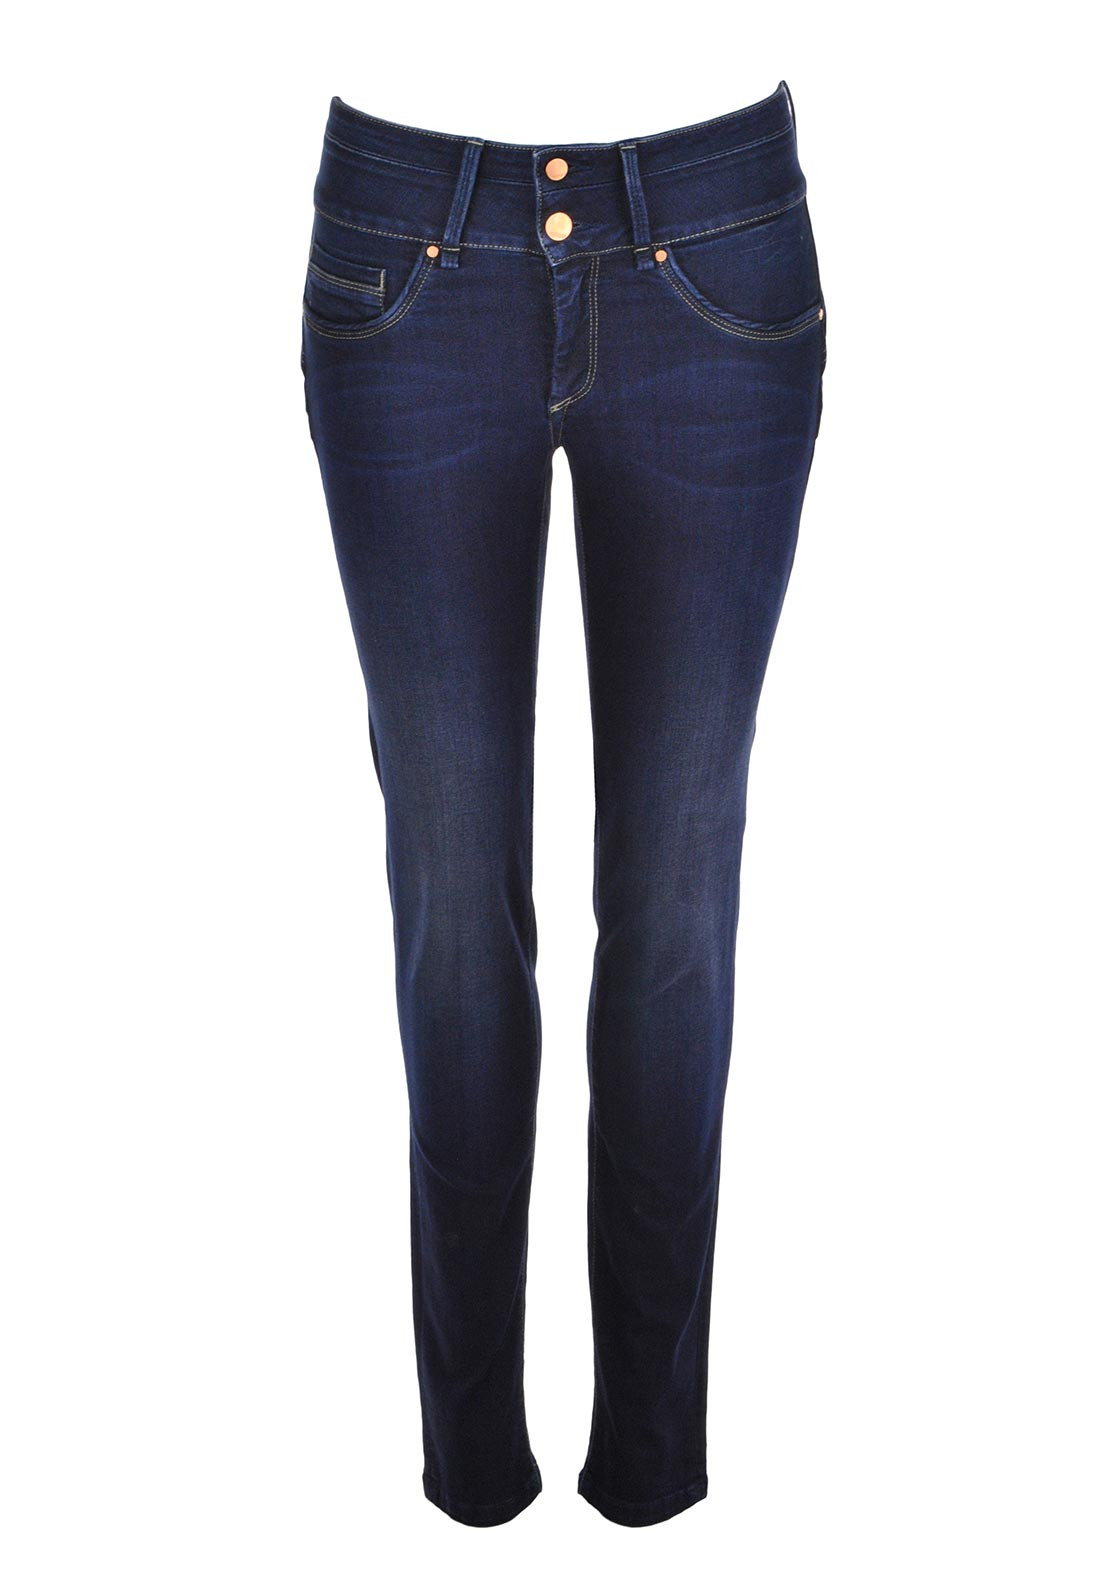 Tiffosi Double Up Skinny Jeans, Navy